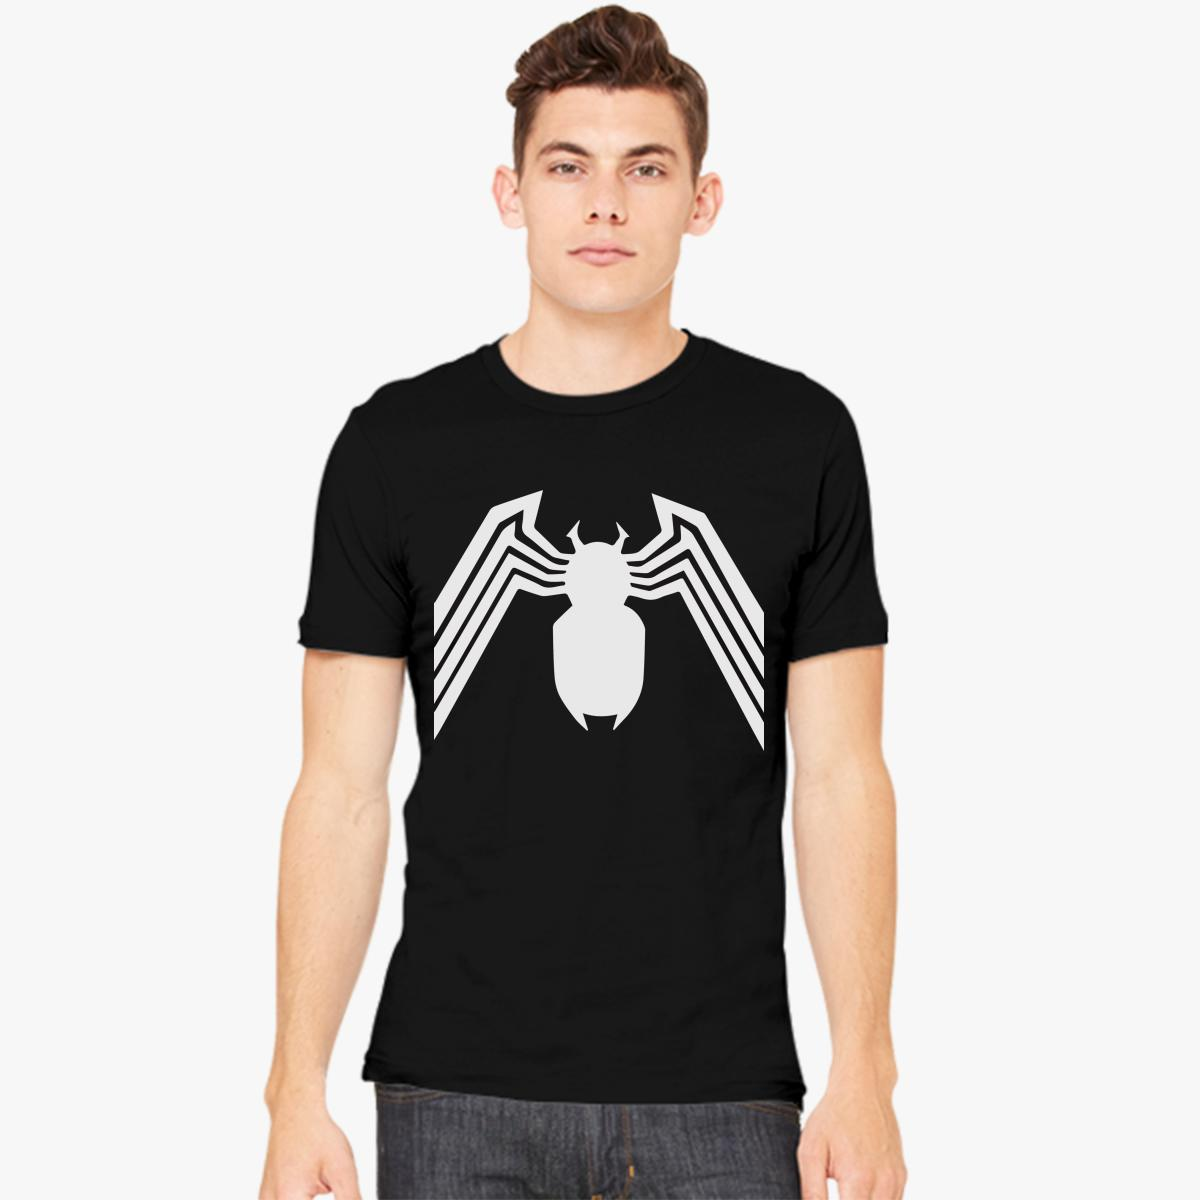 Venom Spider-Man Men's T-shirt